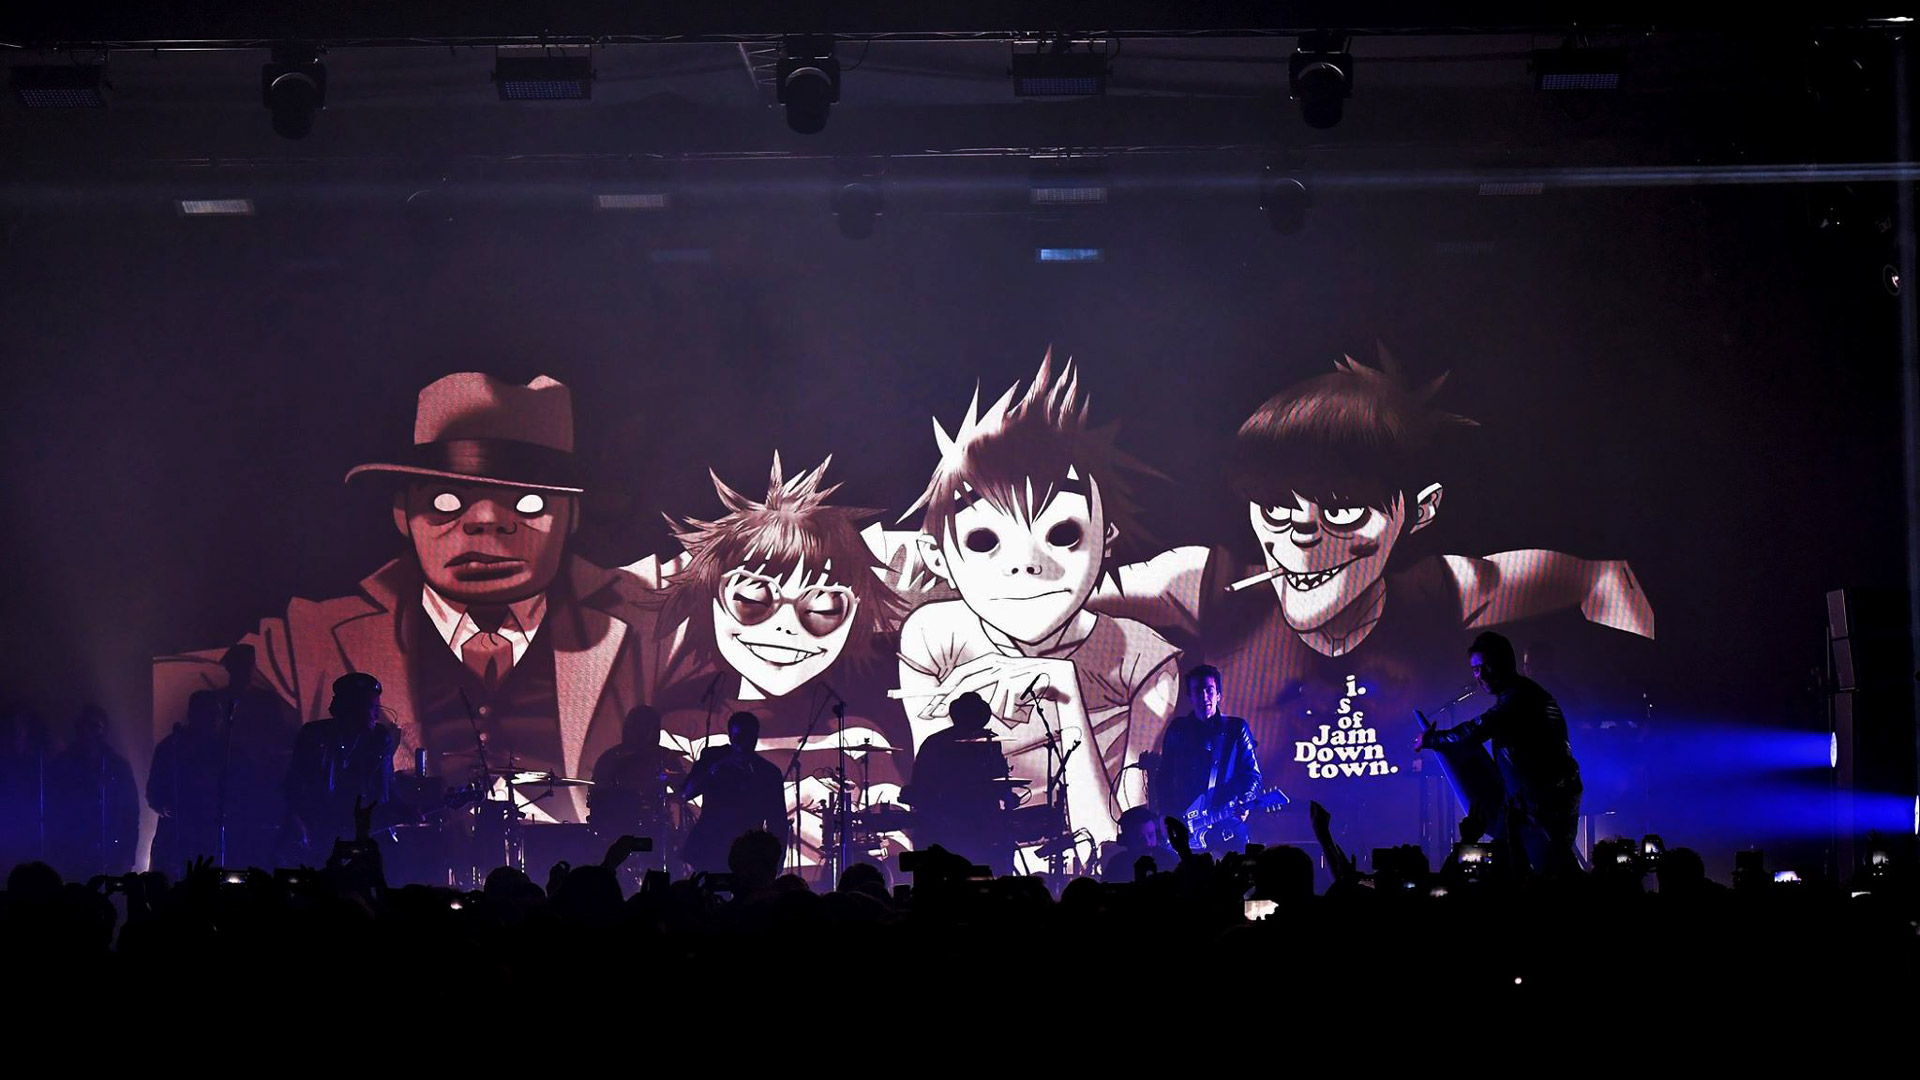 Gorillaz' Music Video Breaks Record as Most Successful 360 Music